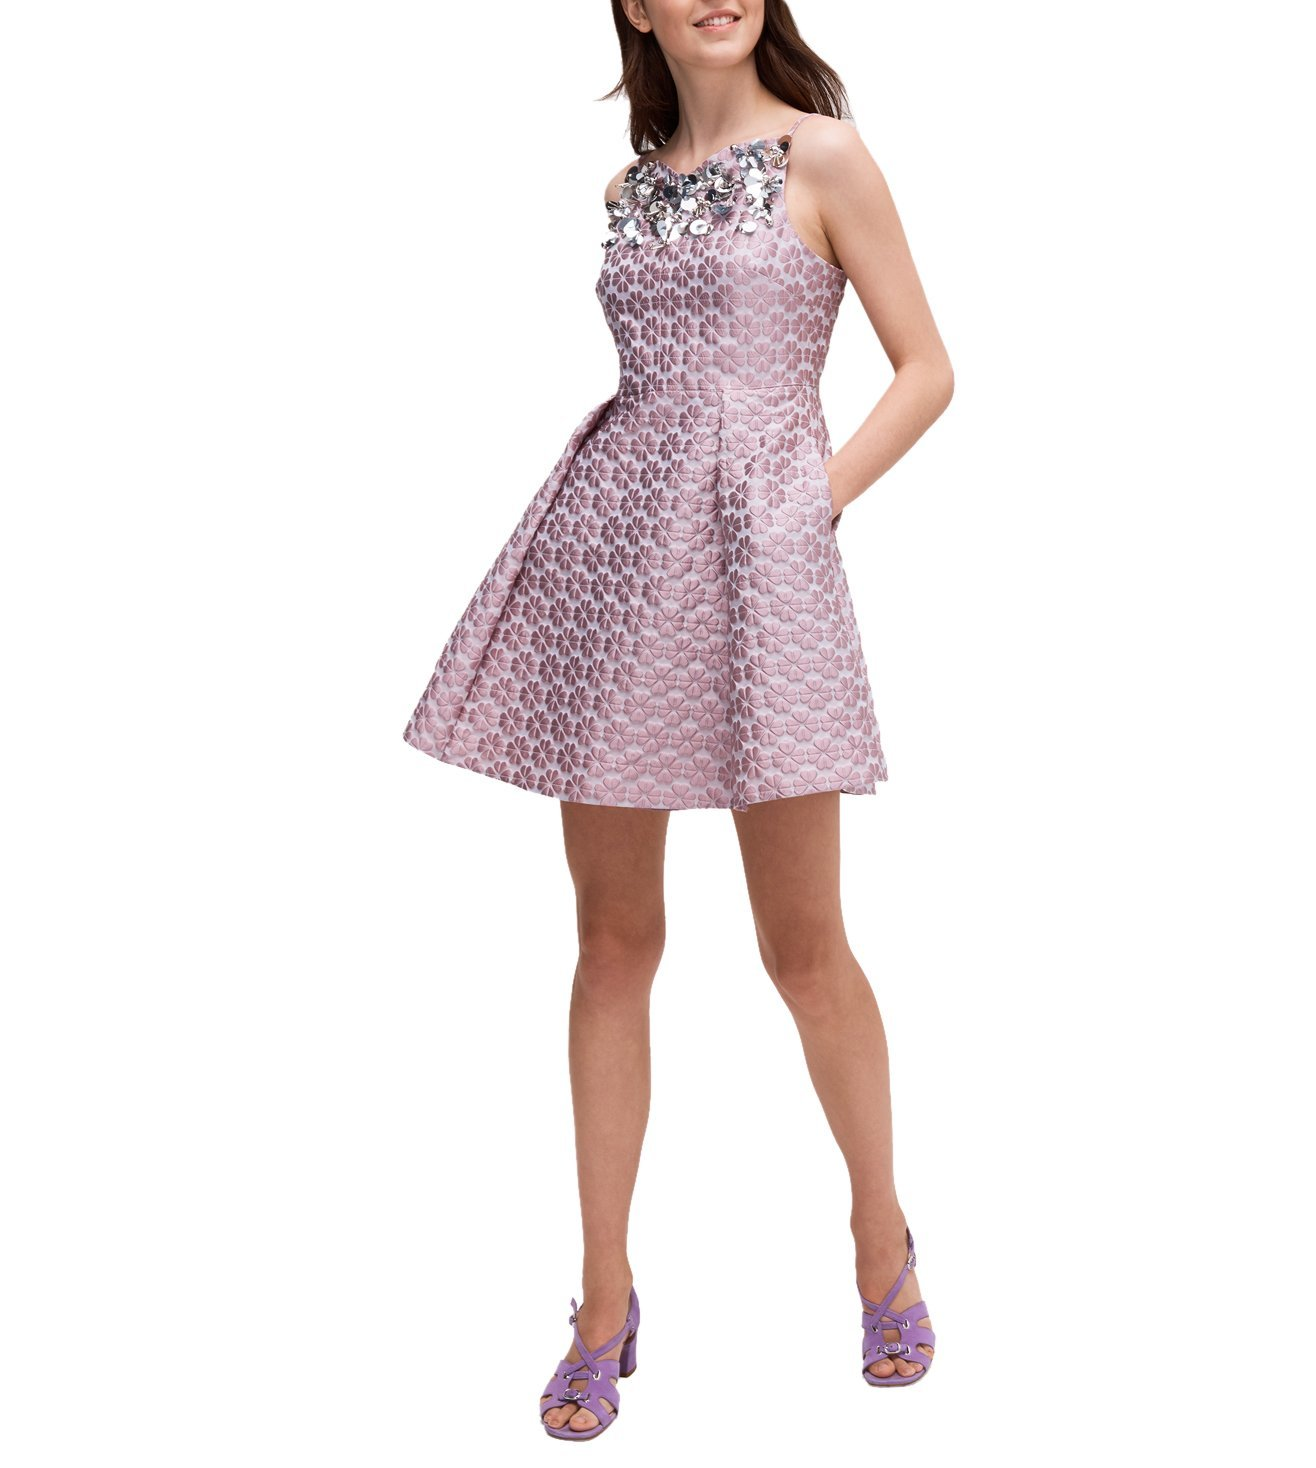 KATE SPADE ICED GRAPE FLORA EMBELLISHED DRESS